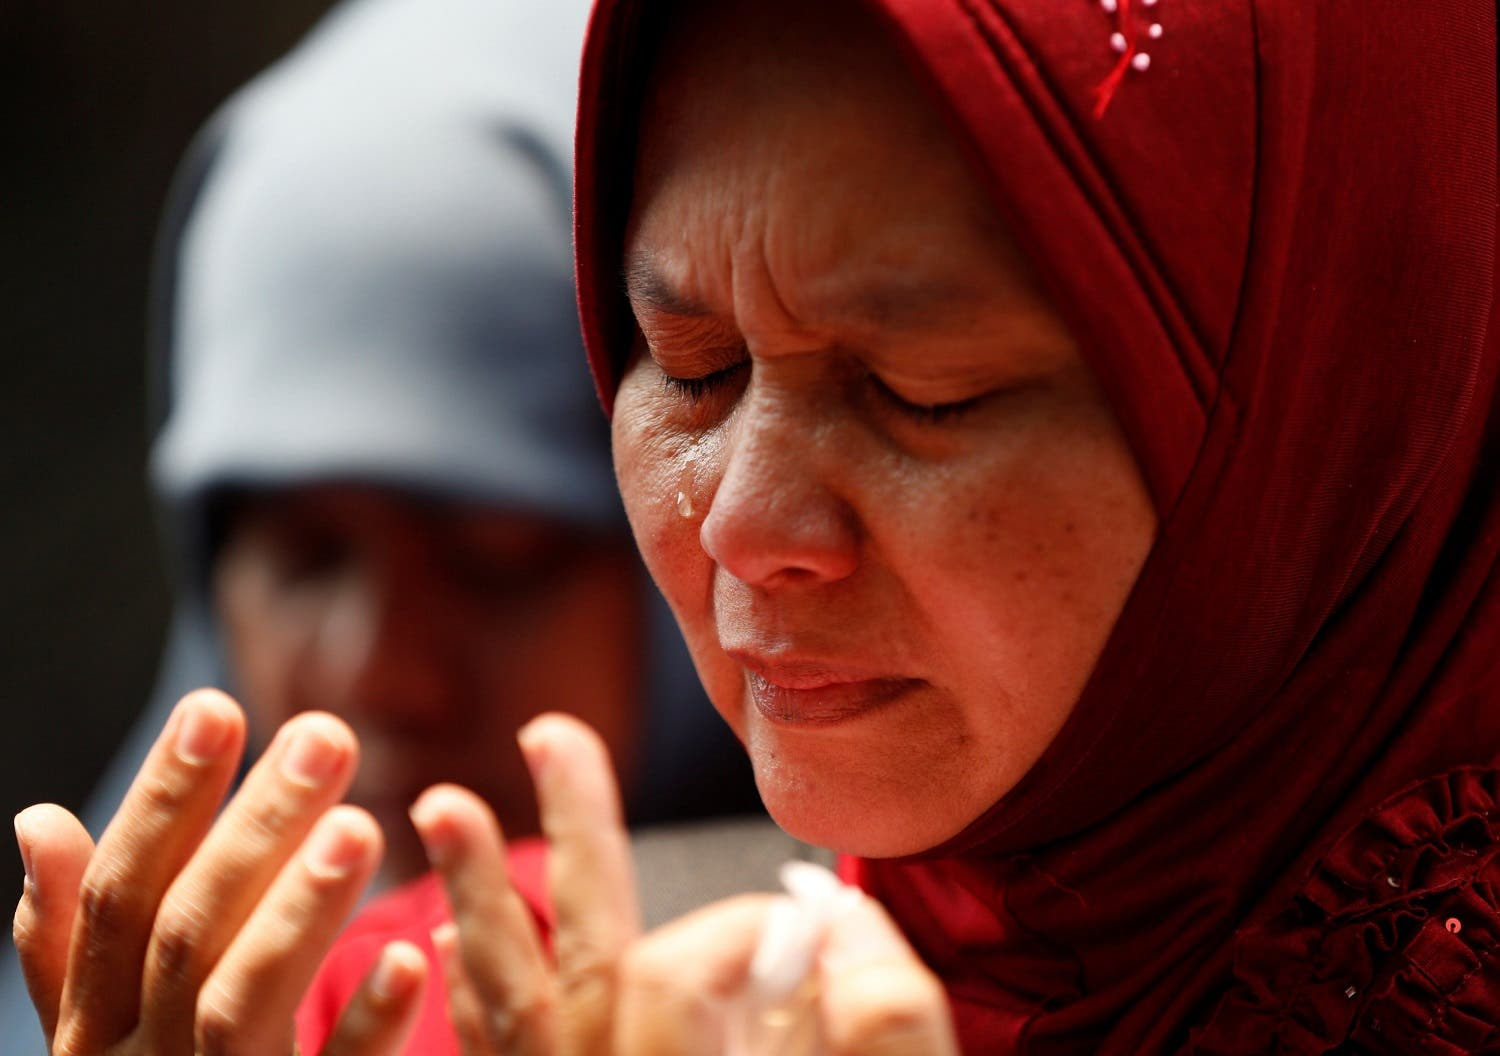 A Muslim woman cries during prayers at the end of a rally in support of Myanmar's Rohingya minority during one of the deadliest bouts of violence involving the Muslim minority in decades outside the Myanmar embassy in Jakarta, Indonesia, September 4, 2017. (Reuters)